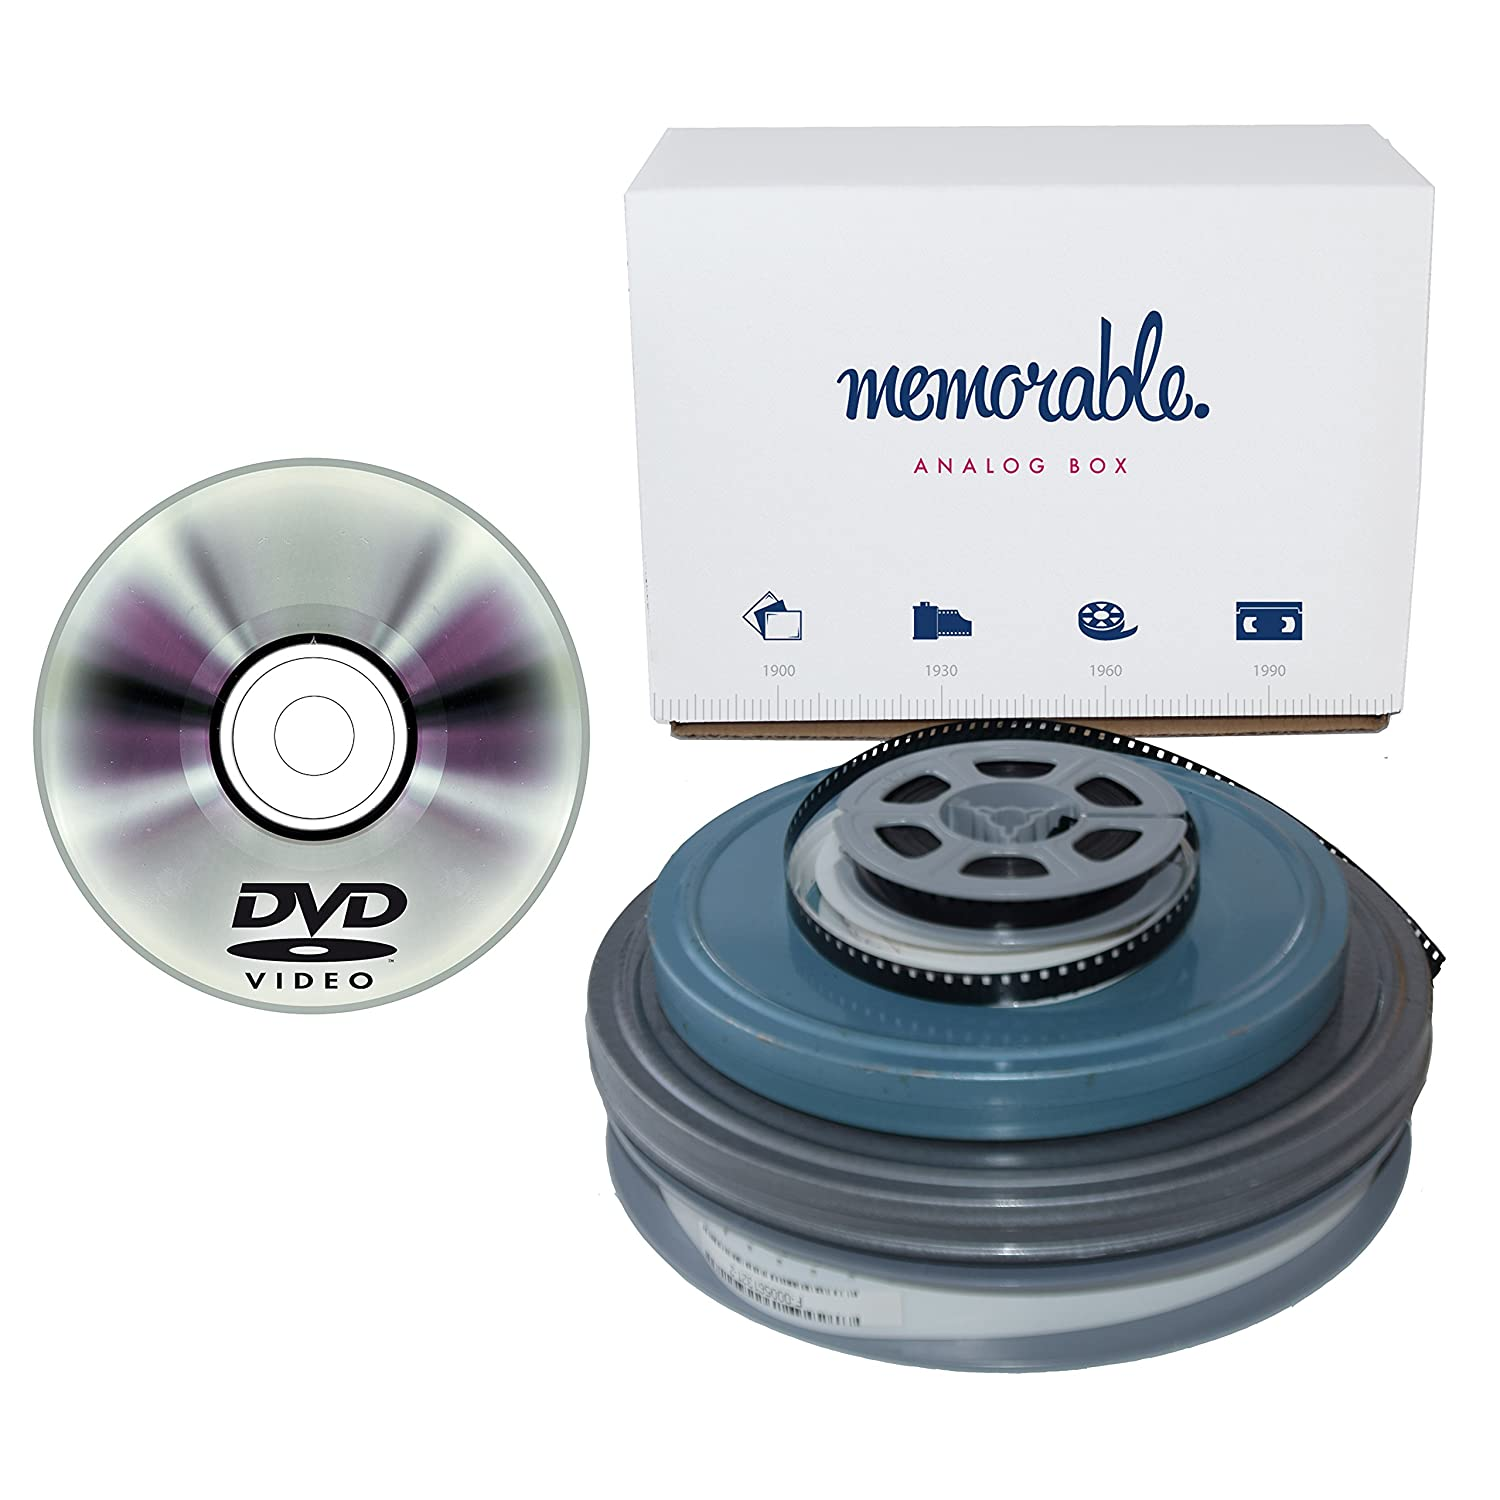 Memorable Film転送サービスto DVD for 8 mmスーパー8 16 mm 80 Reels 80 Reels  B01GN42MZ2